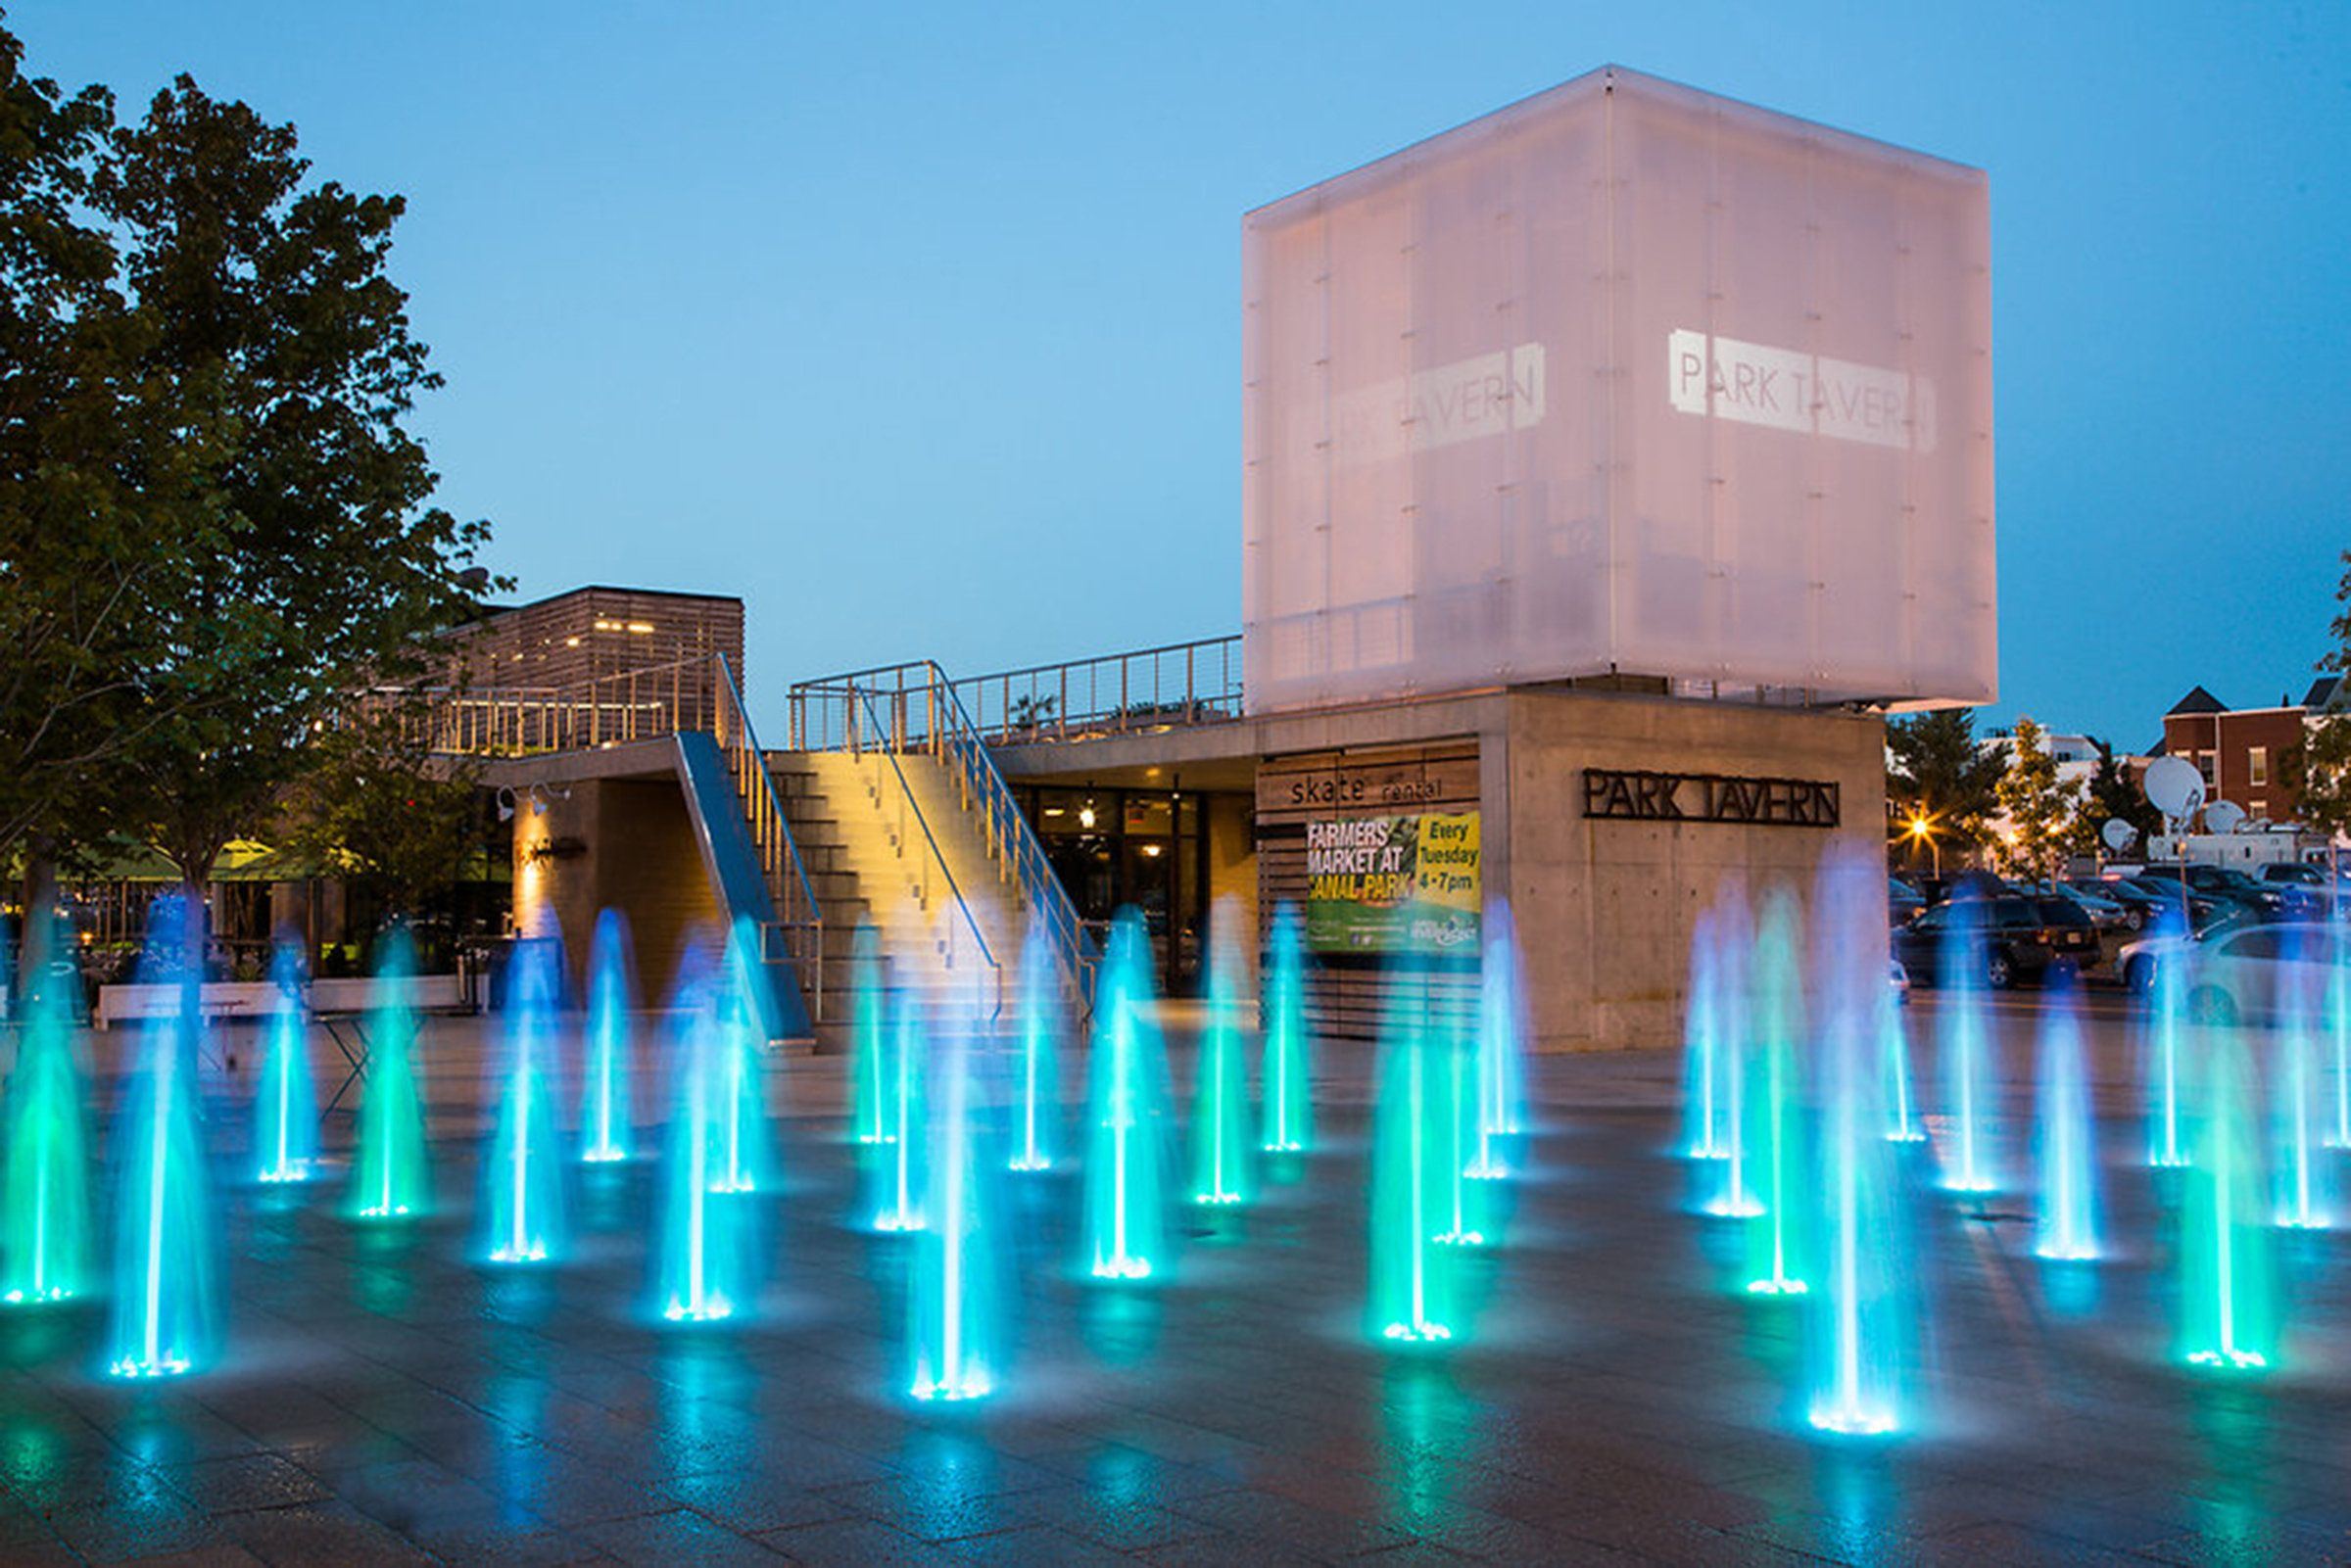 Interactive Fountains A Great Way To Cool Off During The Hot Summer Months And Adding Lights Will Make Those Fount Riverfront Water Feature Lighting Urban Park